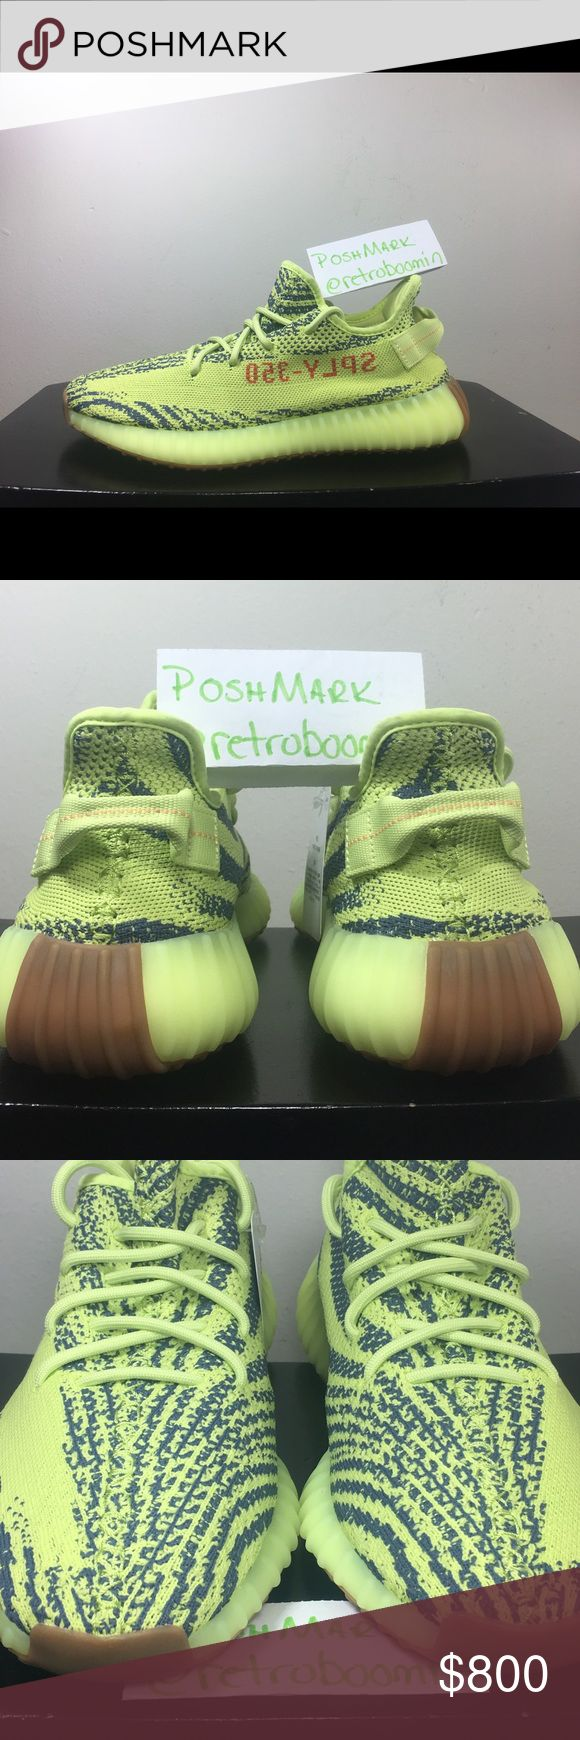 100% Authentic Yeezy Boost 350 Frozen Yellow One of the hottest Yeezy Release to date! This listing is for a pair of Deadstock brand new and original 100% Authentic. MEN'S SIZE 9 and SIZE 7 available which converts to a WOMEMS SIZE 11 or 9  ✅ 100% Authentic ✅ Money Back Guaranteed ✅ Ready to ship NOW ✅ Free 1-3 Day Shipping    **BUY WITH CONFIDENCE**   **ASK ANY QUESTIONS**   **POSH TRANSACTIONS ONLY** This will protect us both from any fraud, scams or fakes     GOOD LUCK🤙 Yeezy Shoes…